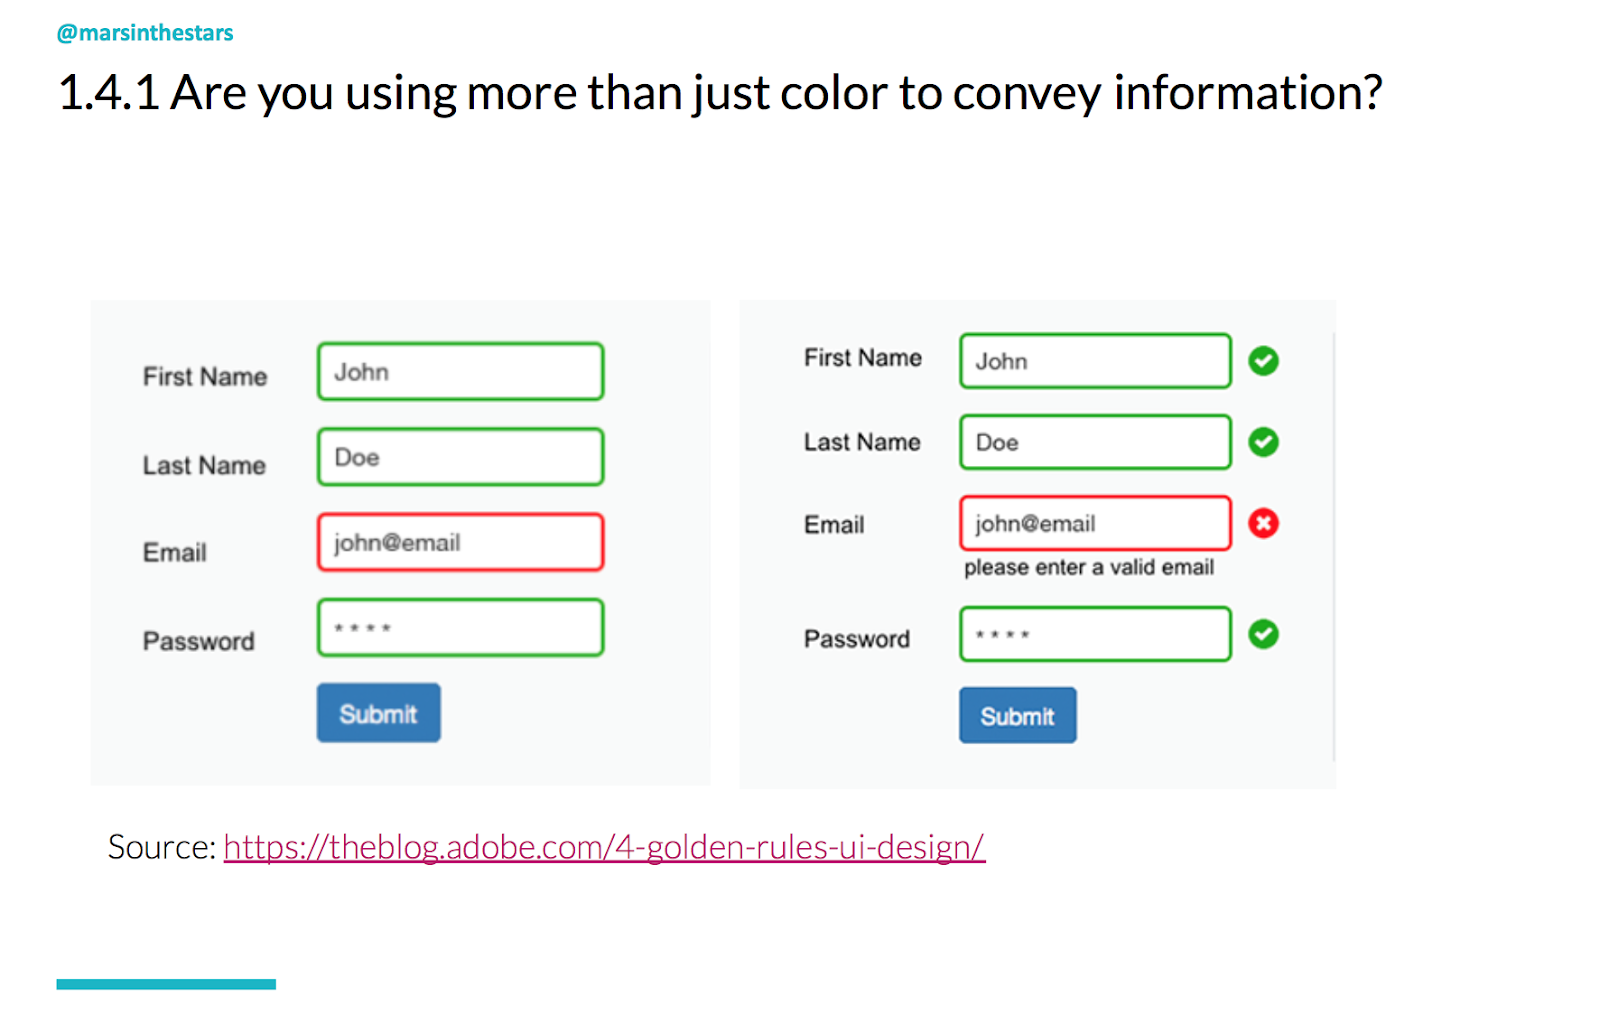 Slide shows how colour is often used to show an error in a form - green for correct, red for incorrect.